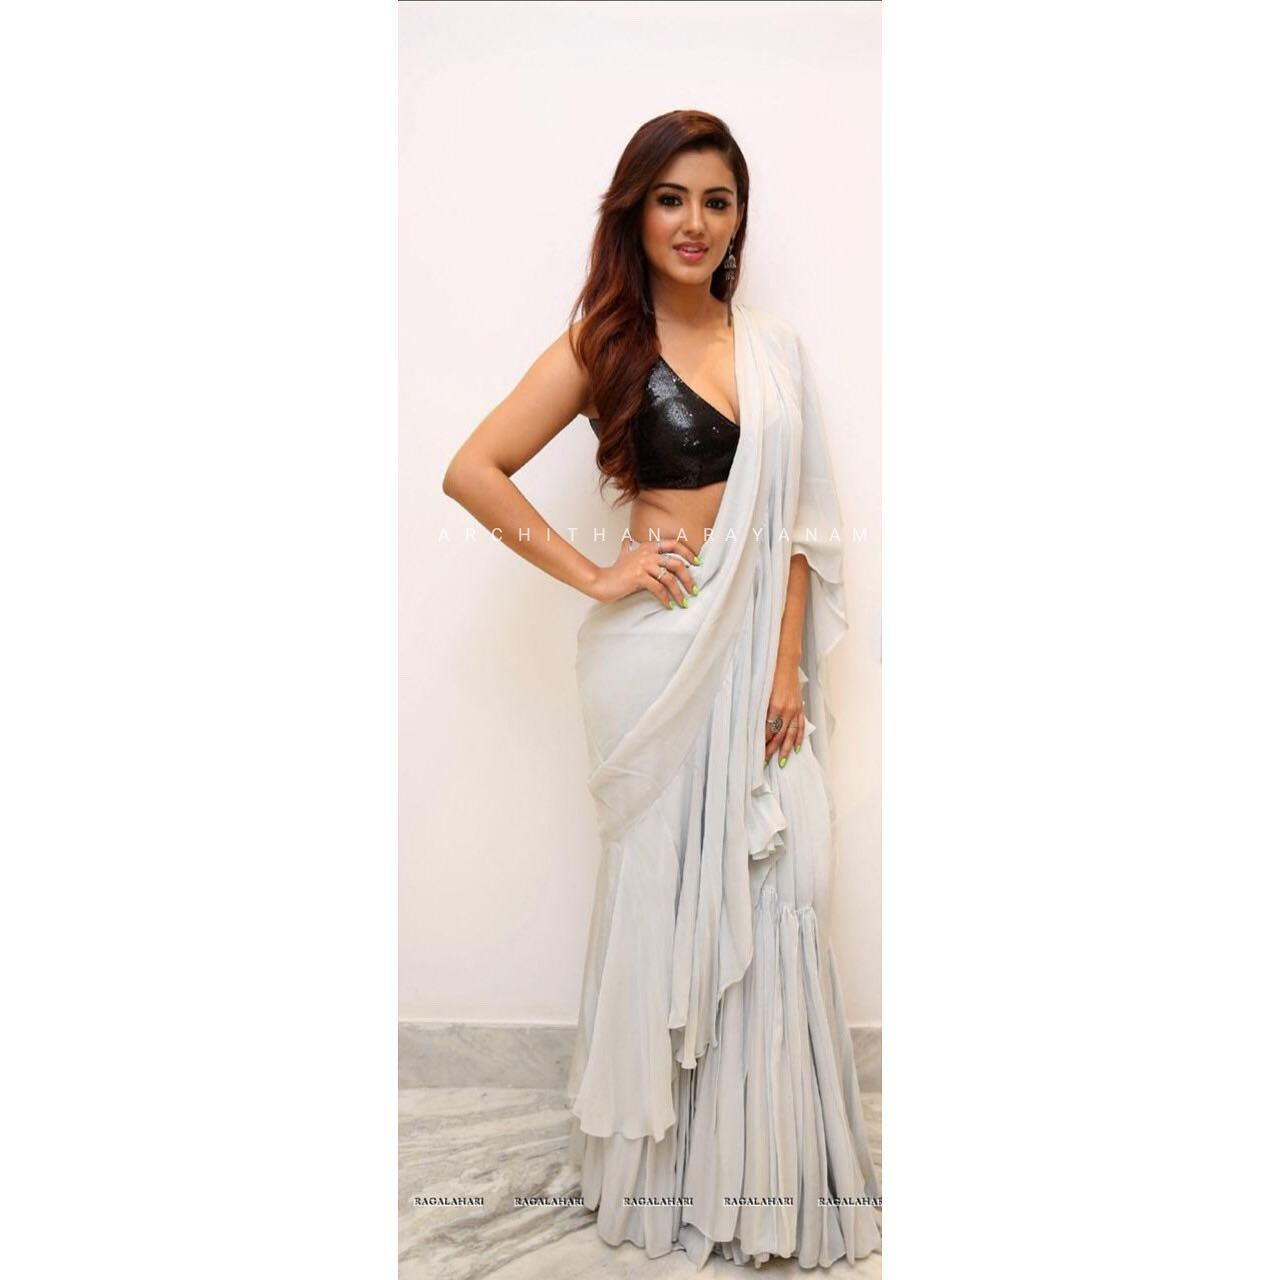 A pastel grey classic chiffon ruffled saree paired with a black sequence blouse will be classy evening affair!